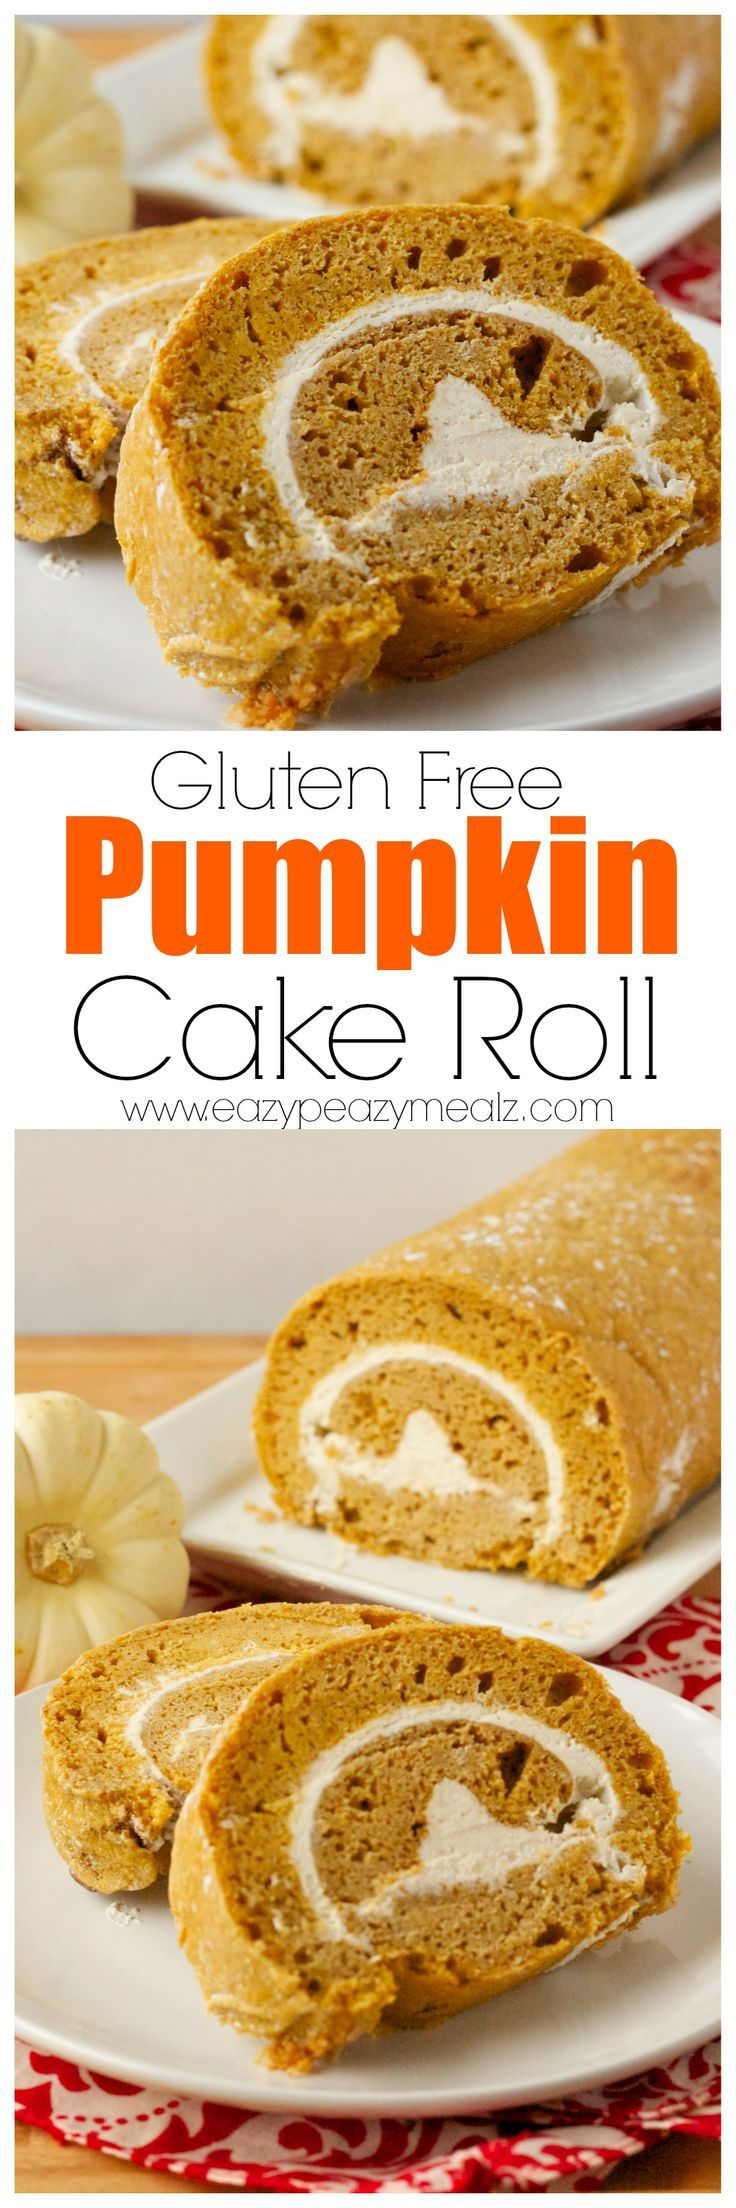 Pumpkin Cake Roll filled with cream cheese filling, and totally gluten free! Serious deliciousness to be had here. - Eazy Peazy Mealz